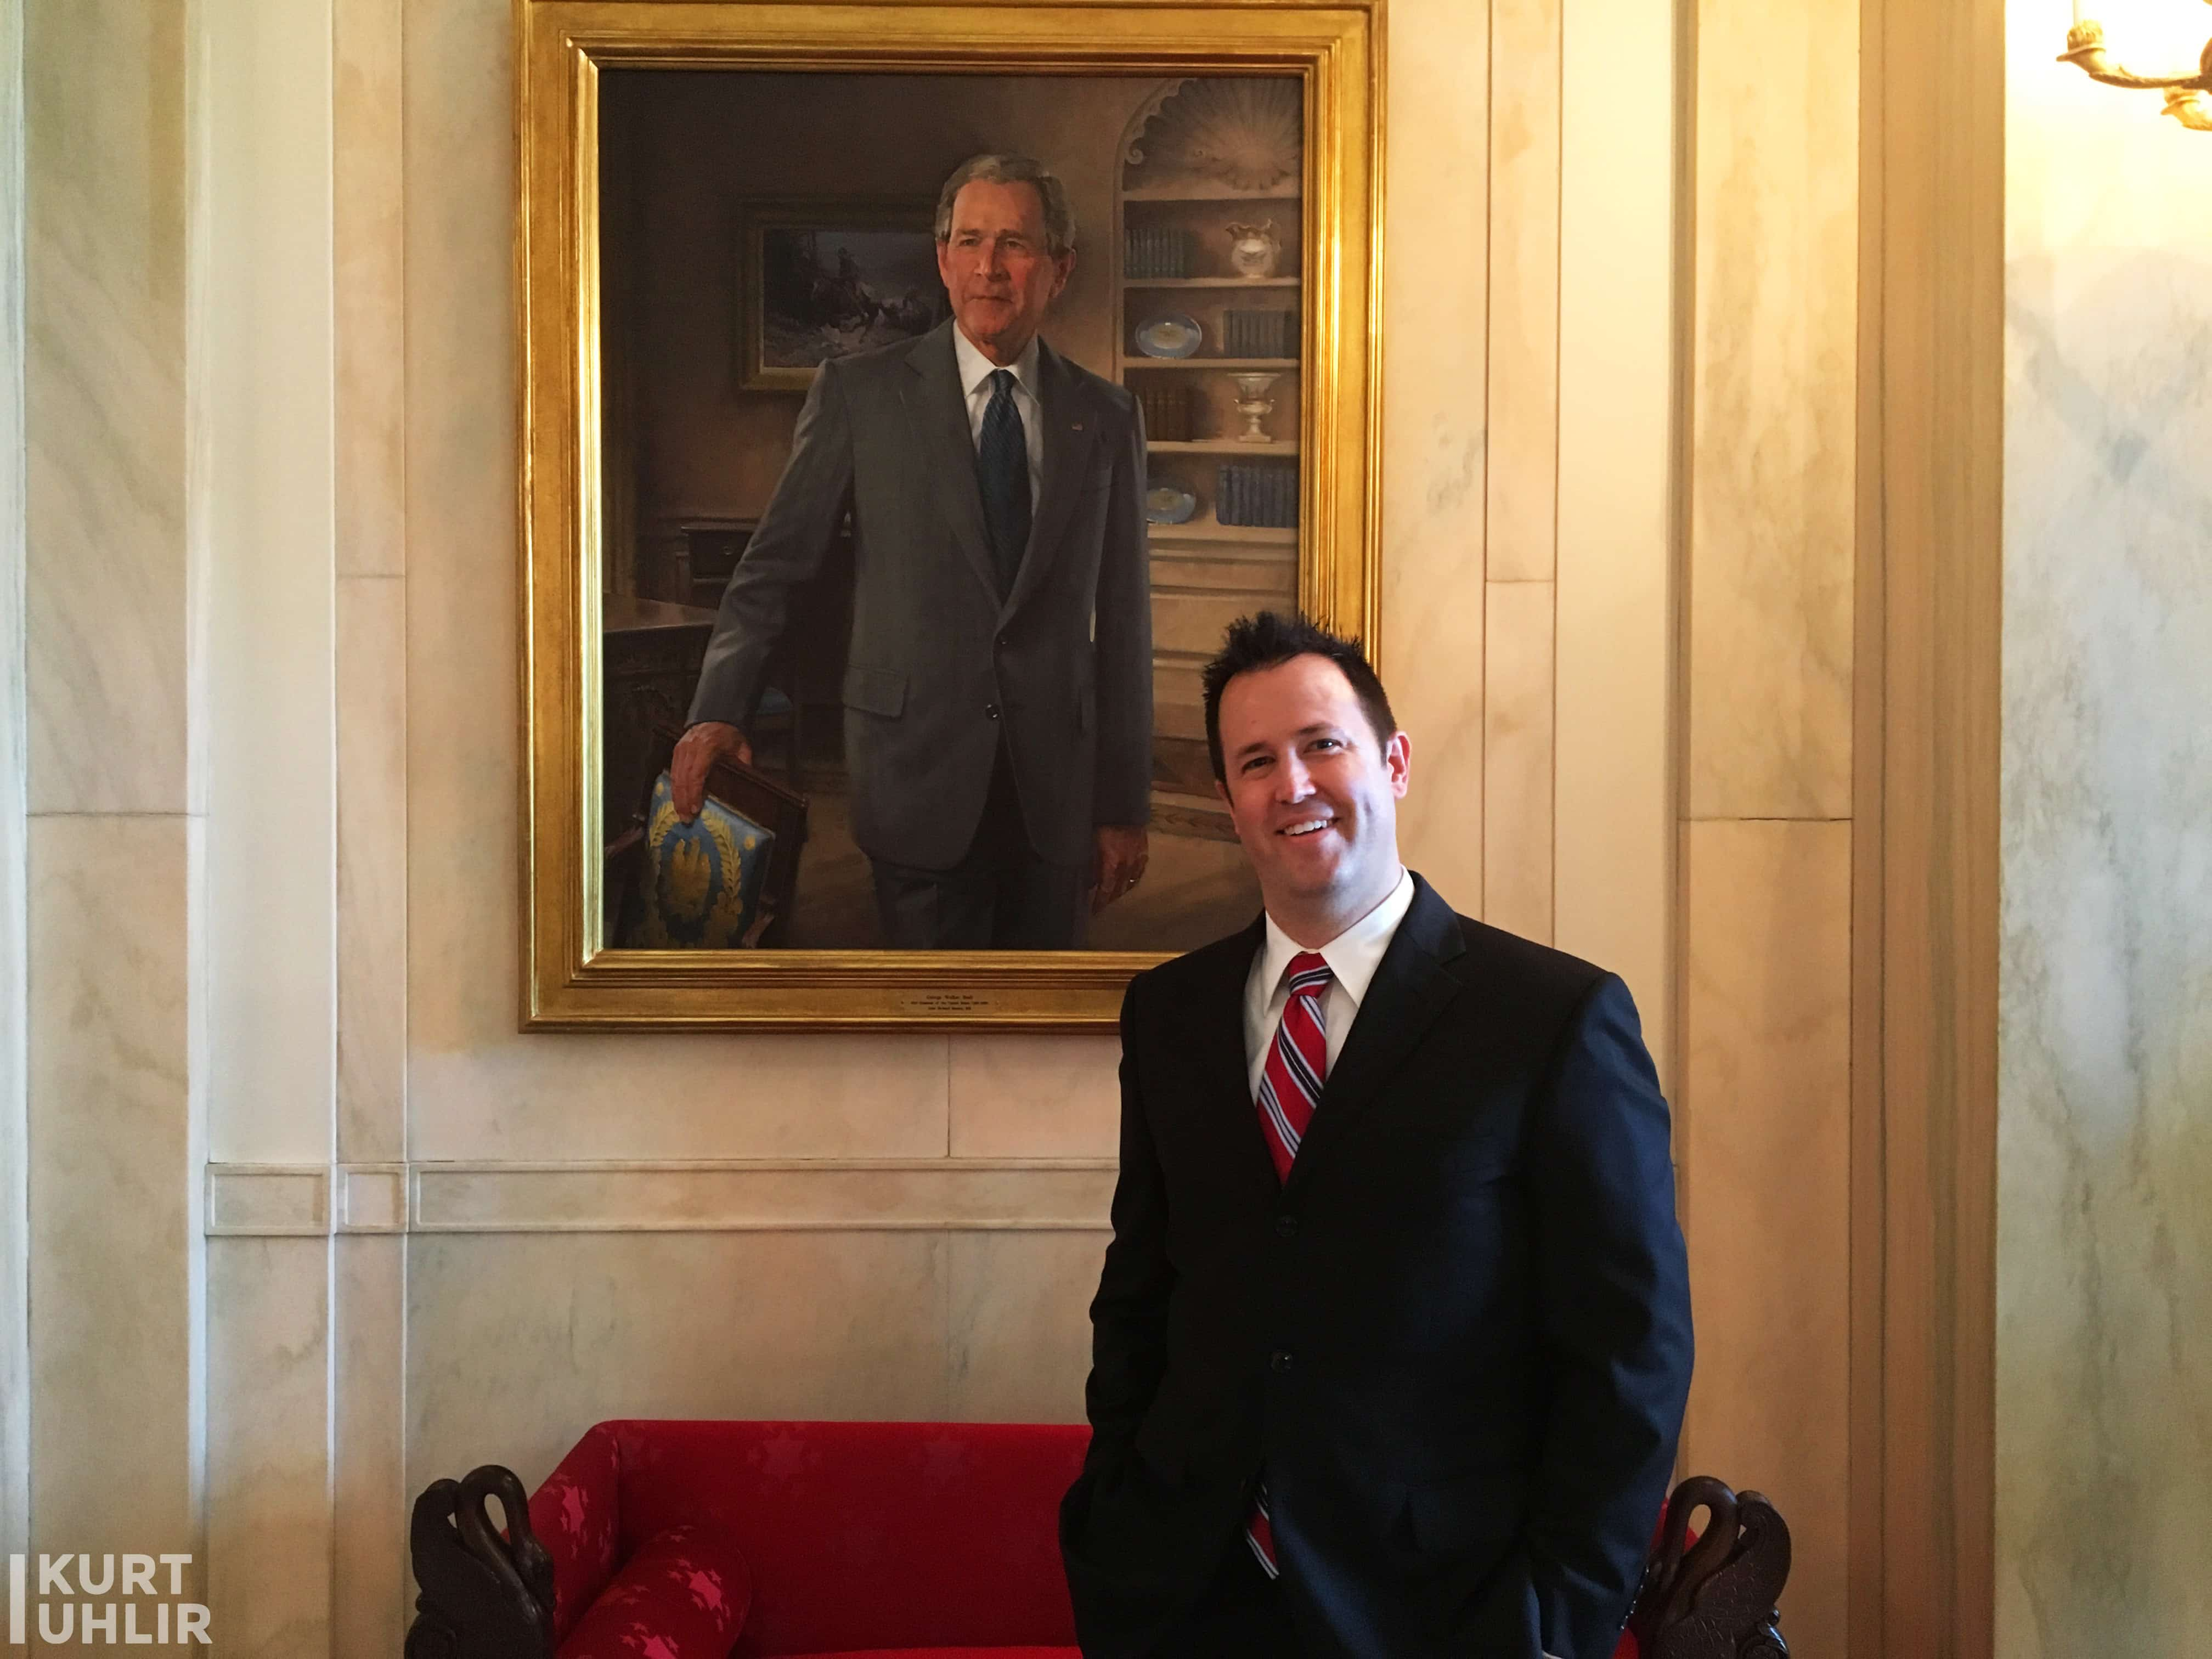 Kurt Uhlir hanging with GW (well a painting of him) in Entrance Hall in the residence of The White House.